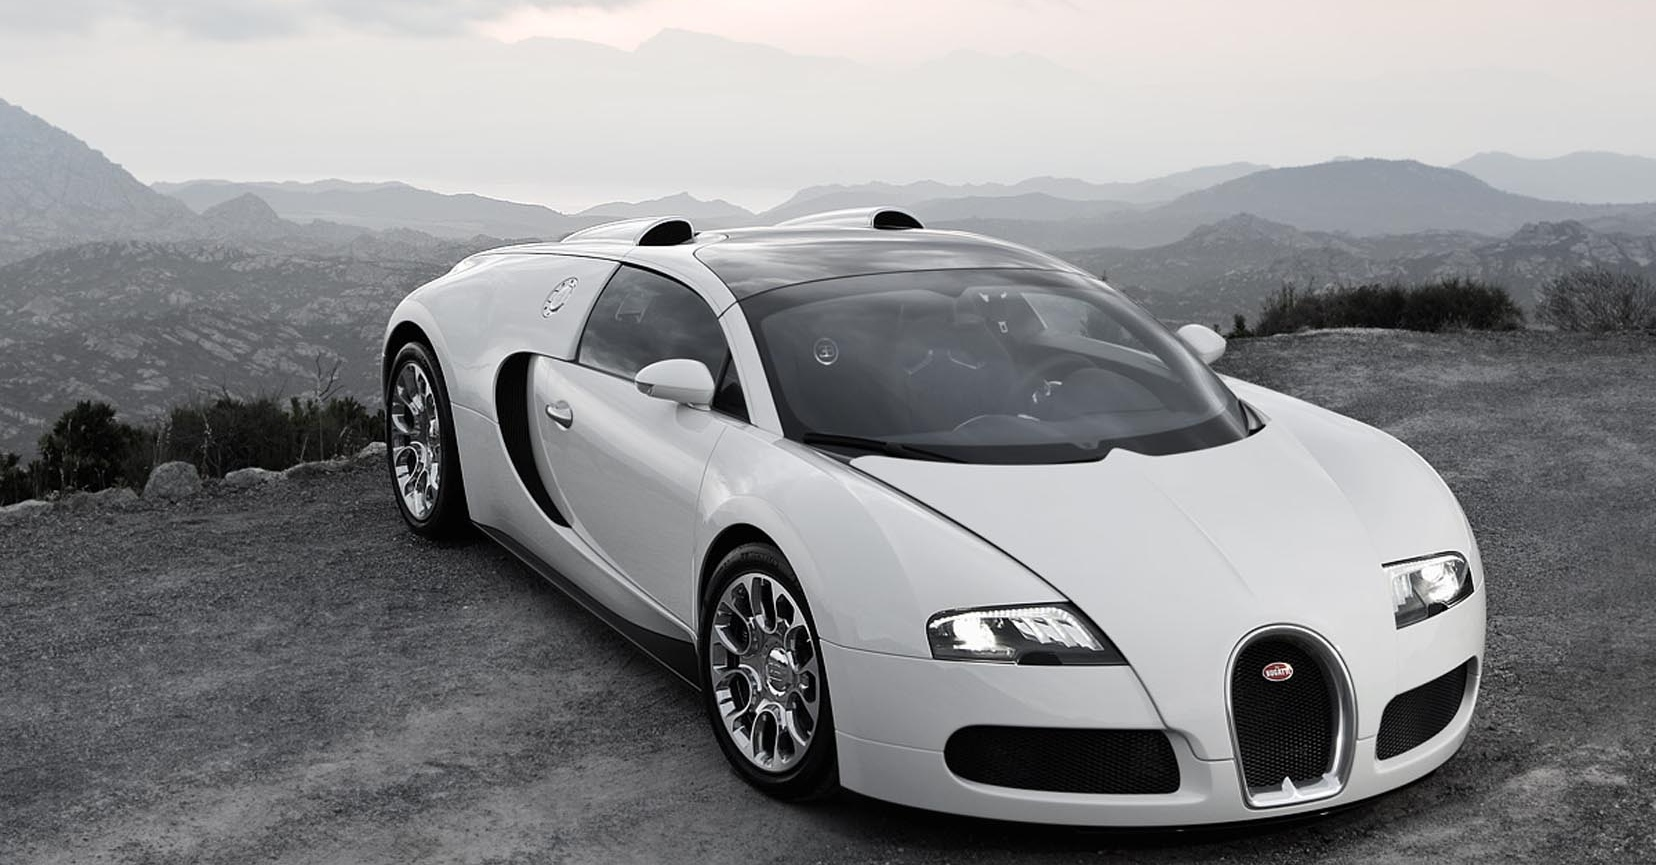 Bugatti Veyron 13 Free Hd Car Wallpaper Carwallpapersfordesktop Org